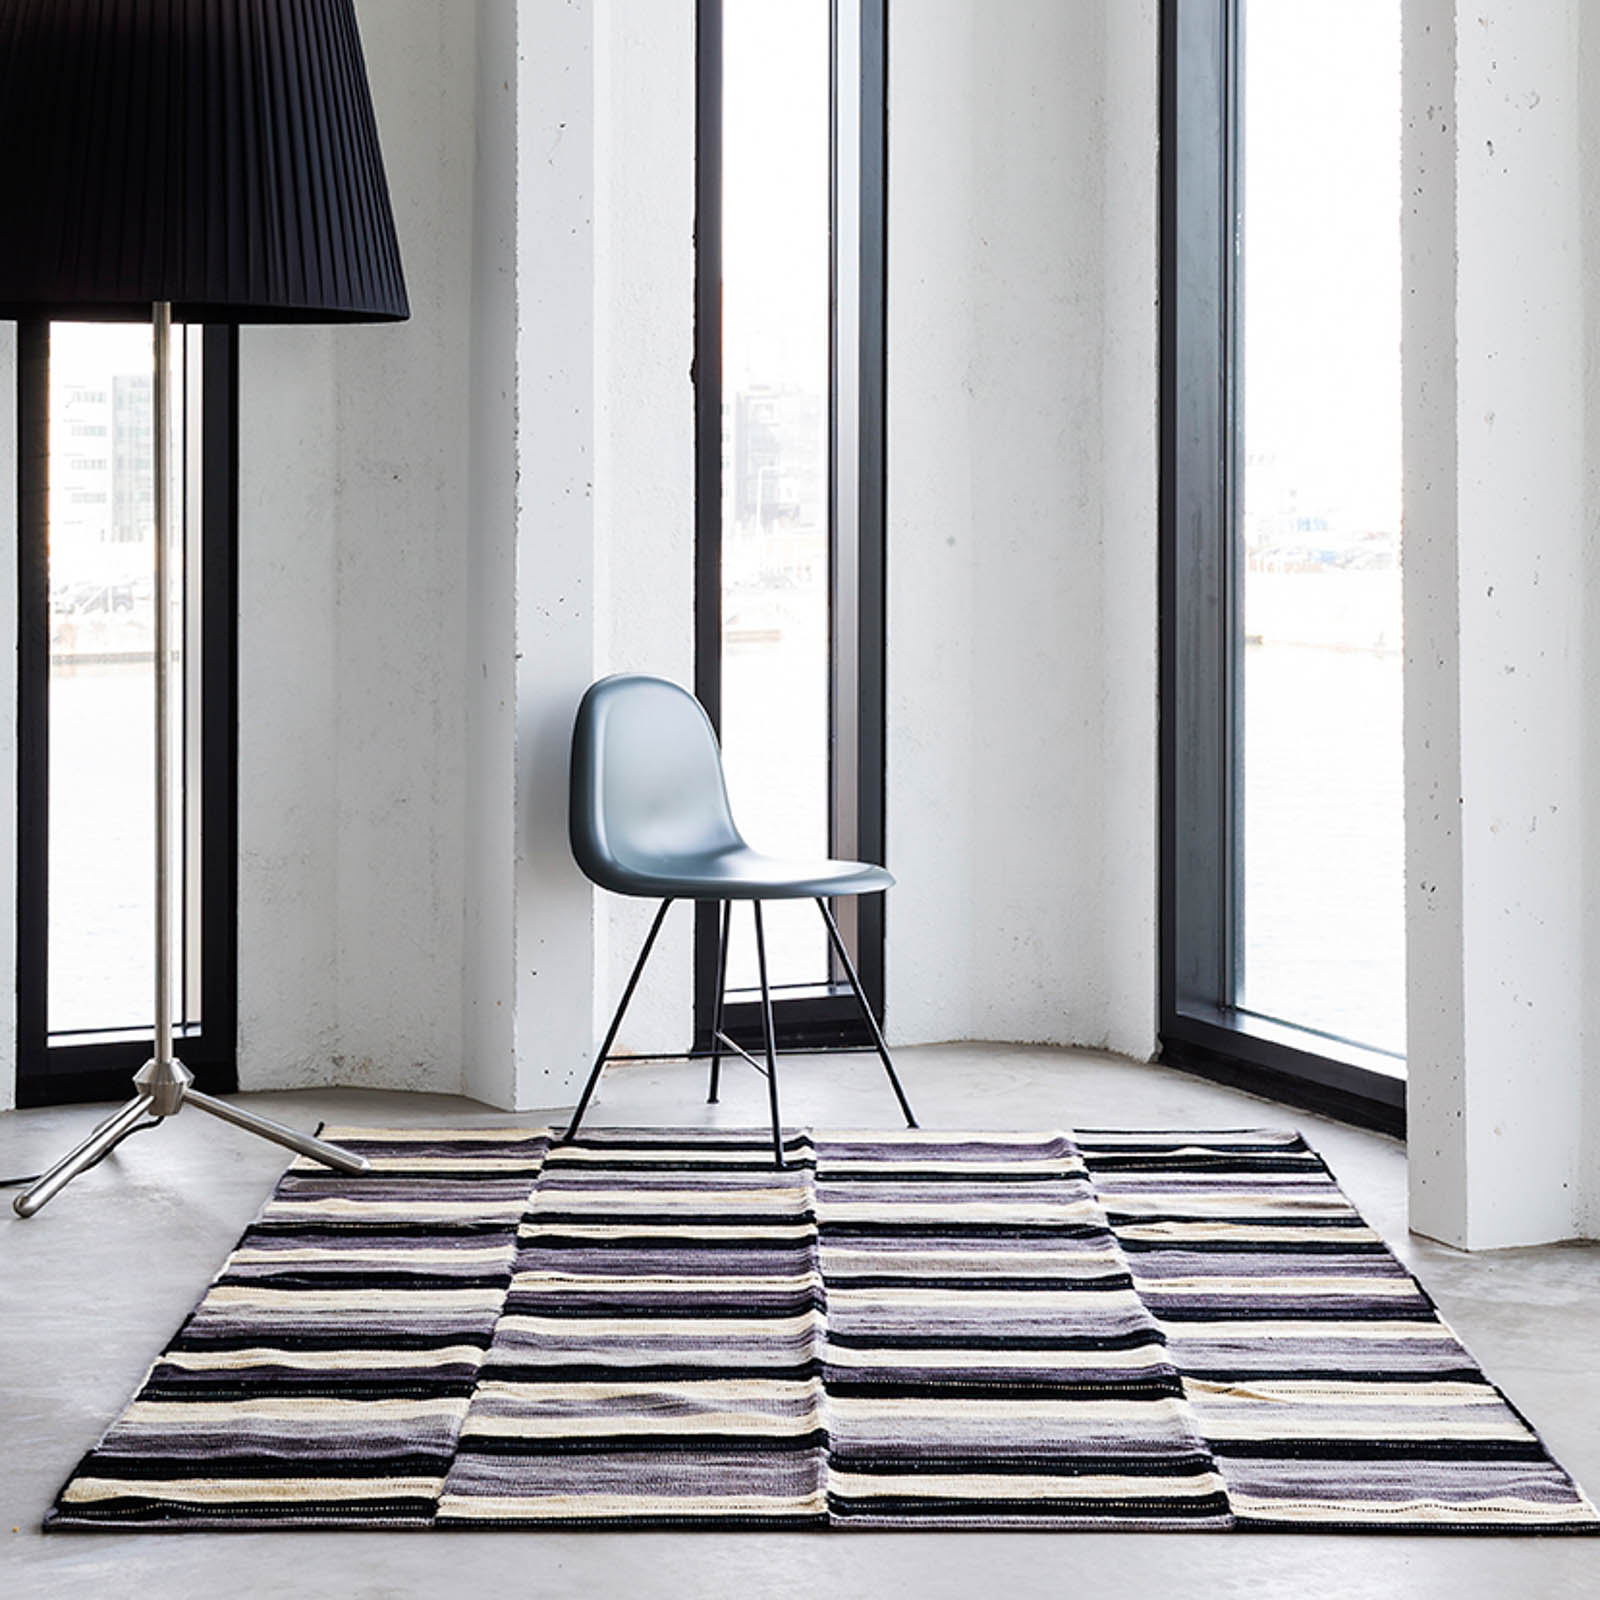 Global Gypsy Rugs in Grey and Black by Massimo